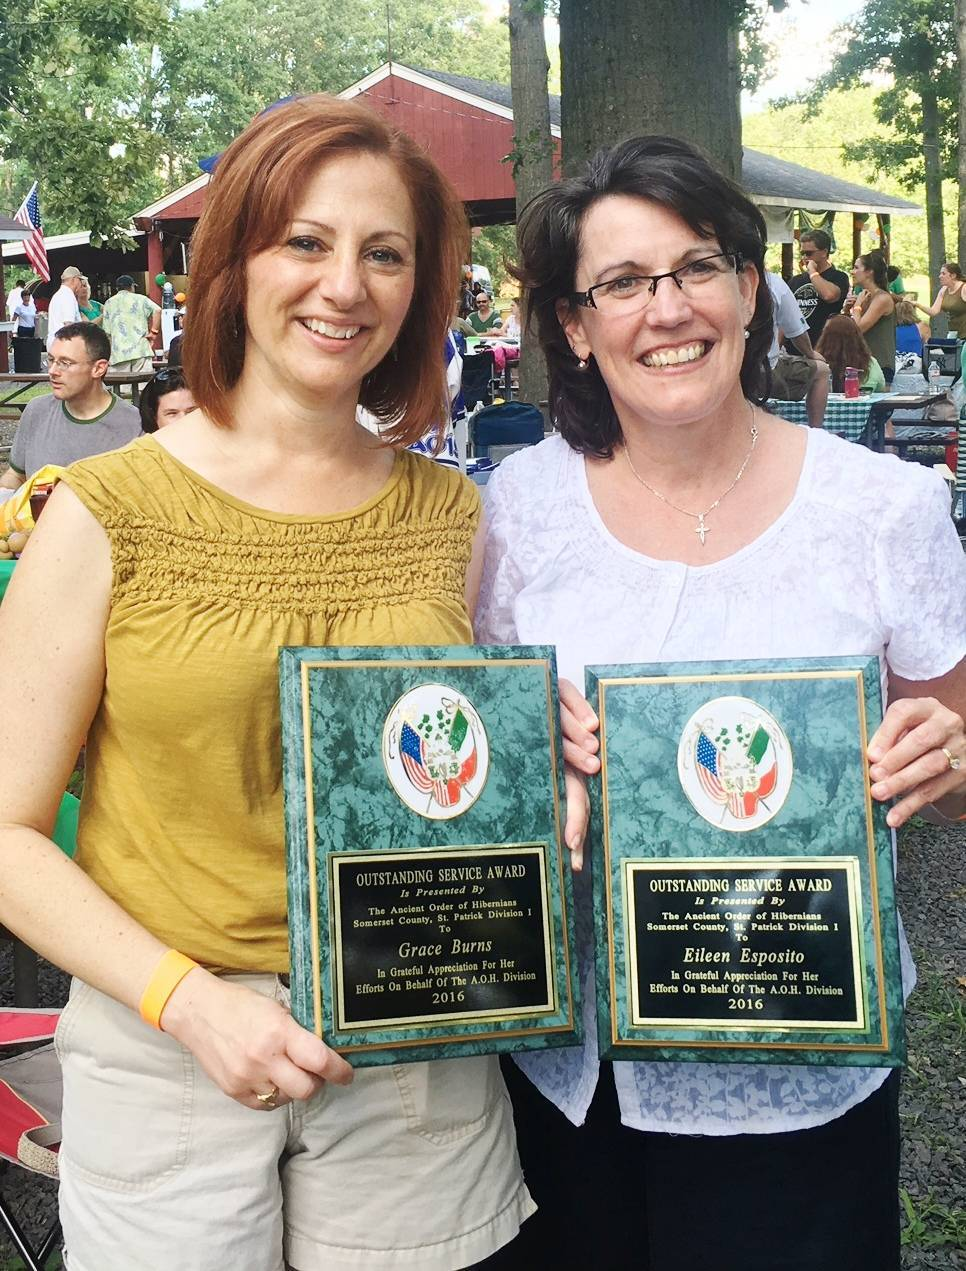 New jersey somerset county flagtown - Grace Burns Left And Eileen Esposito Received Awards For Their Charitable Work With The Hibernians At Sunday S Annual Picnic Credits Rod Hirsch